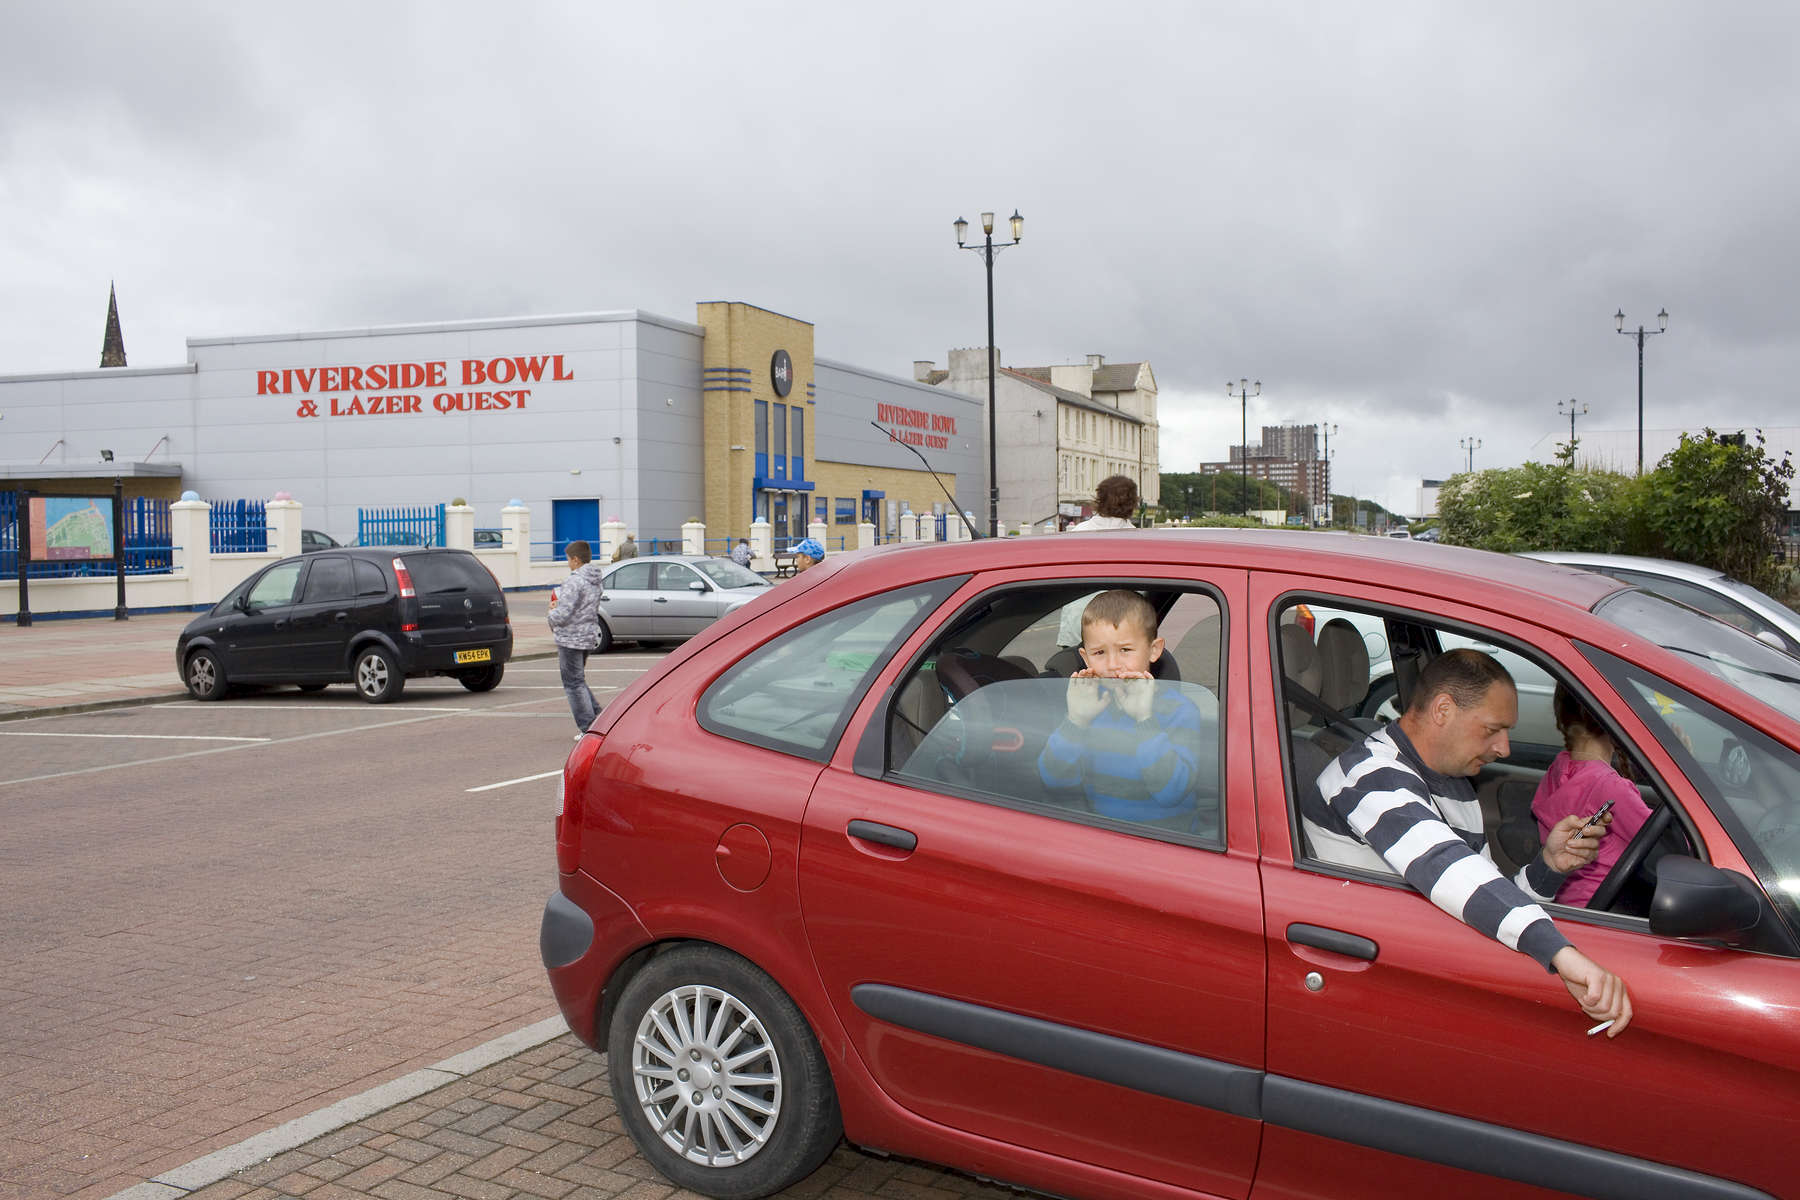 A young boy in the back seat of a car parked in front of the Riverside Bowl and Lazer Quest Centre on Marine Promenade, New Brighton.In 1986, world famous photographer Martin Parr published his book 'The Last Resort,' a set of photographs taken over three seasons 1983-85 in the Liverpool suburb of New Brighton. 25 years later, photographer and Parr fan, Peter Dench, went on a Bank Holiday pilgrimage to New Brigthon to walk in Parr's footsteps and document what has changed or remained the same in the seaside town.